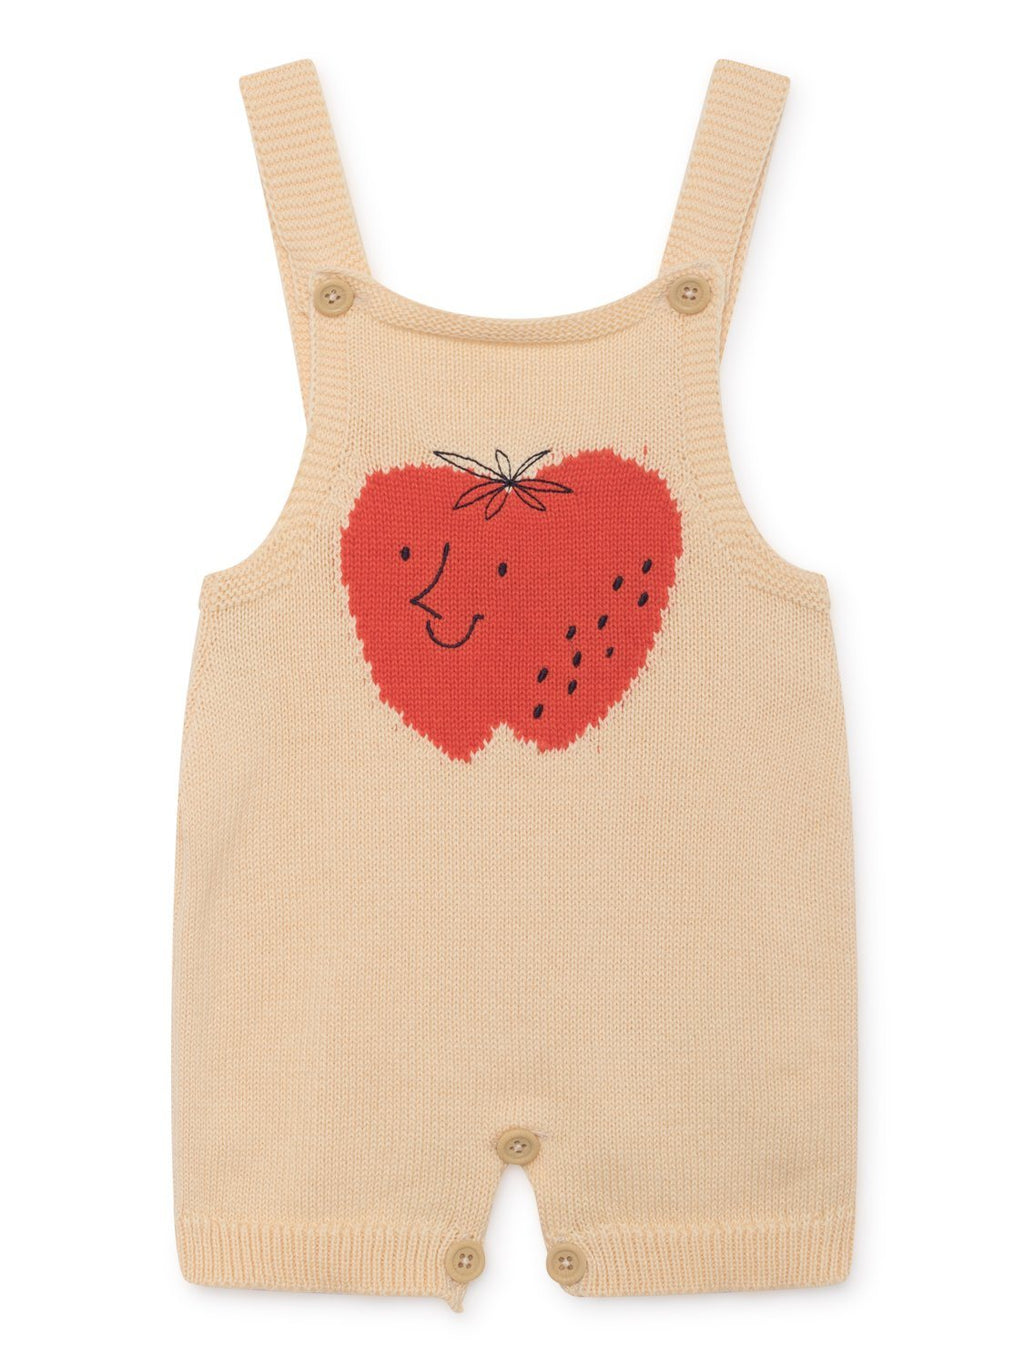 Strawberry knitted overall Bobo Choses Dungarees Bobo Choses